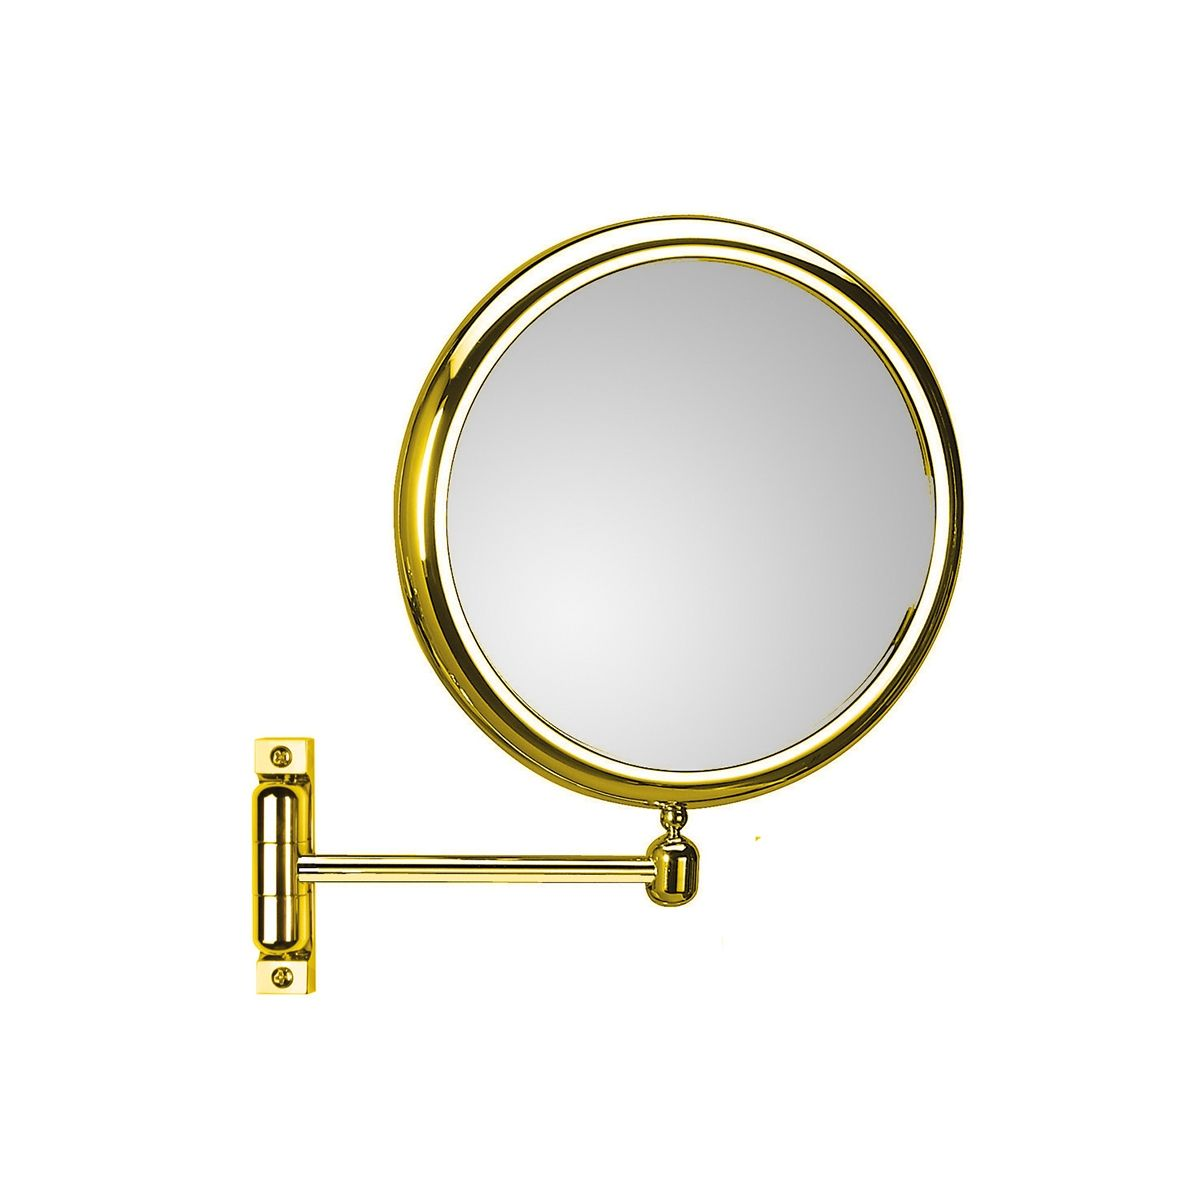 Gold Bathroom Accessories - Mirror